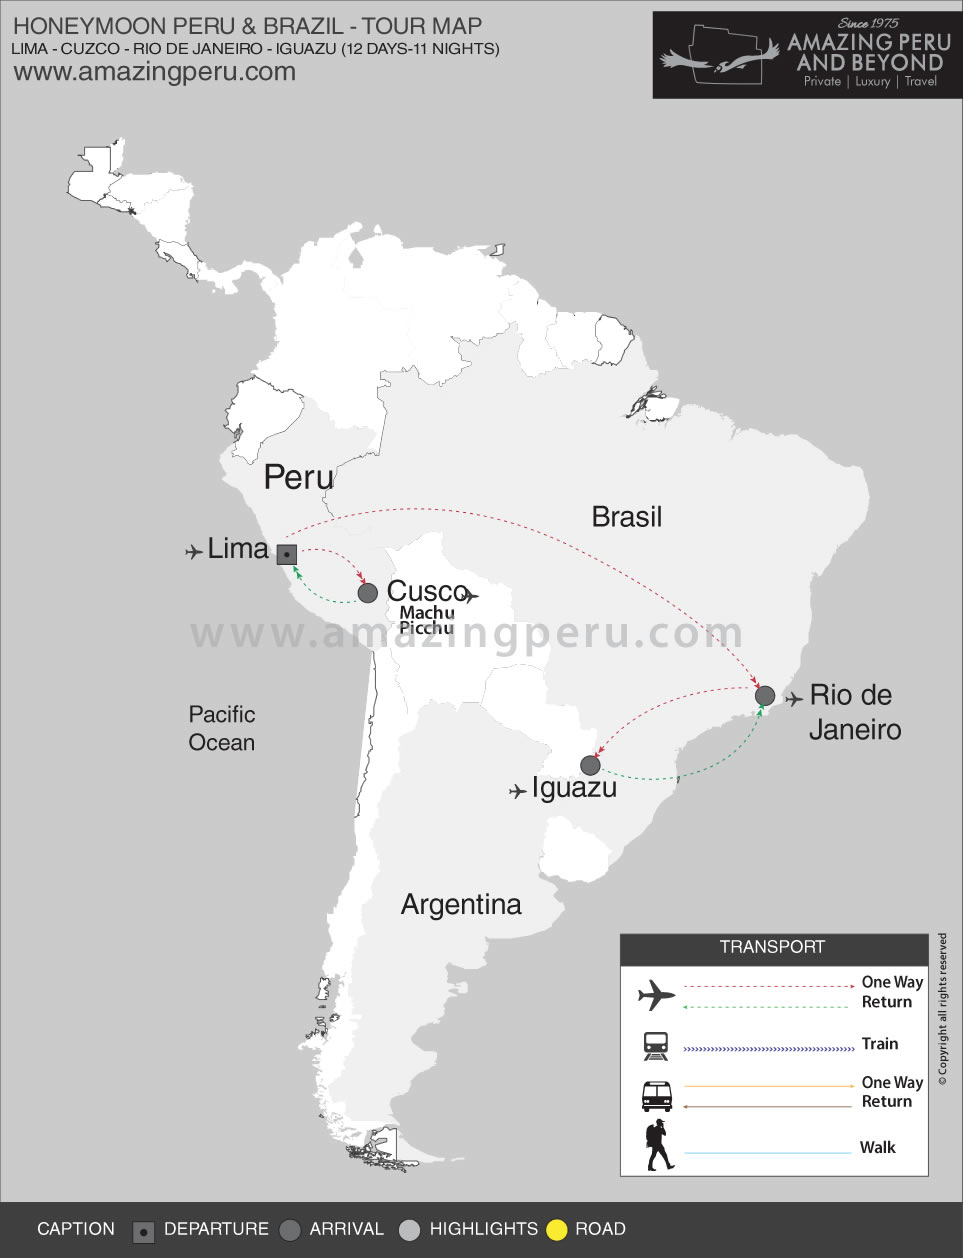 Peru Honeymoon Tour 4 Honeymoon Peru & Brazil - 12 days / 11 nights.